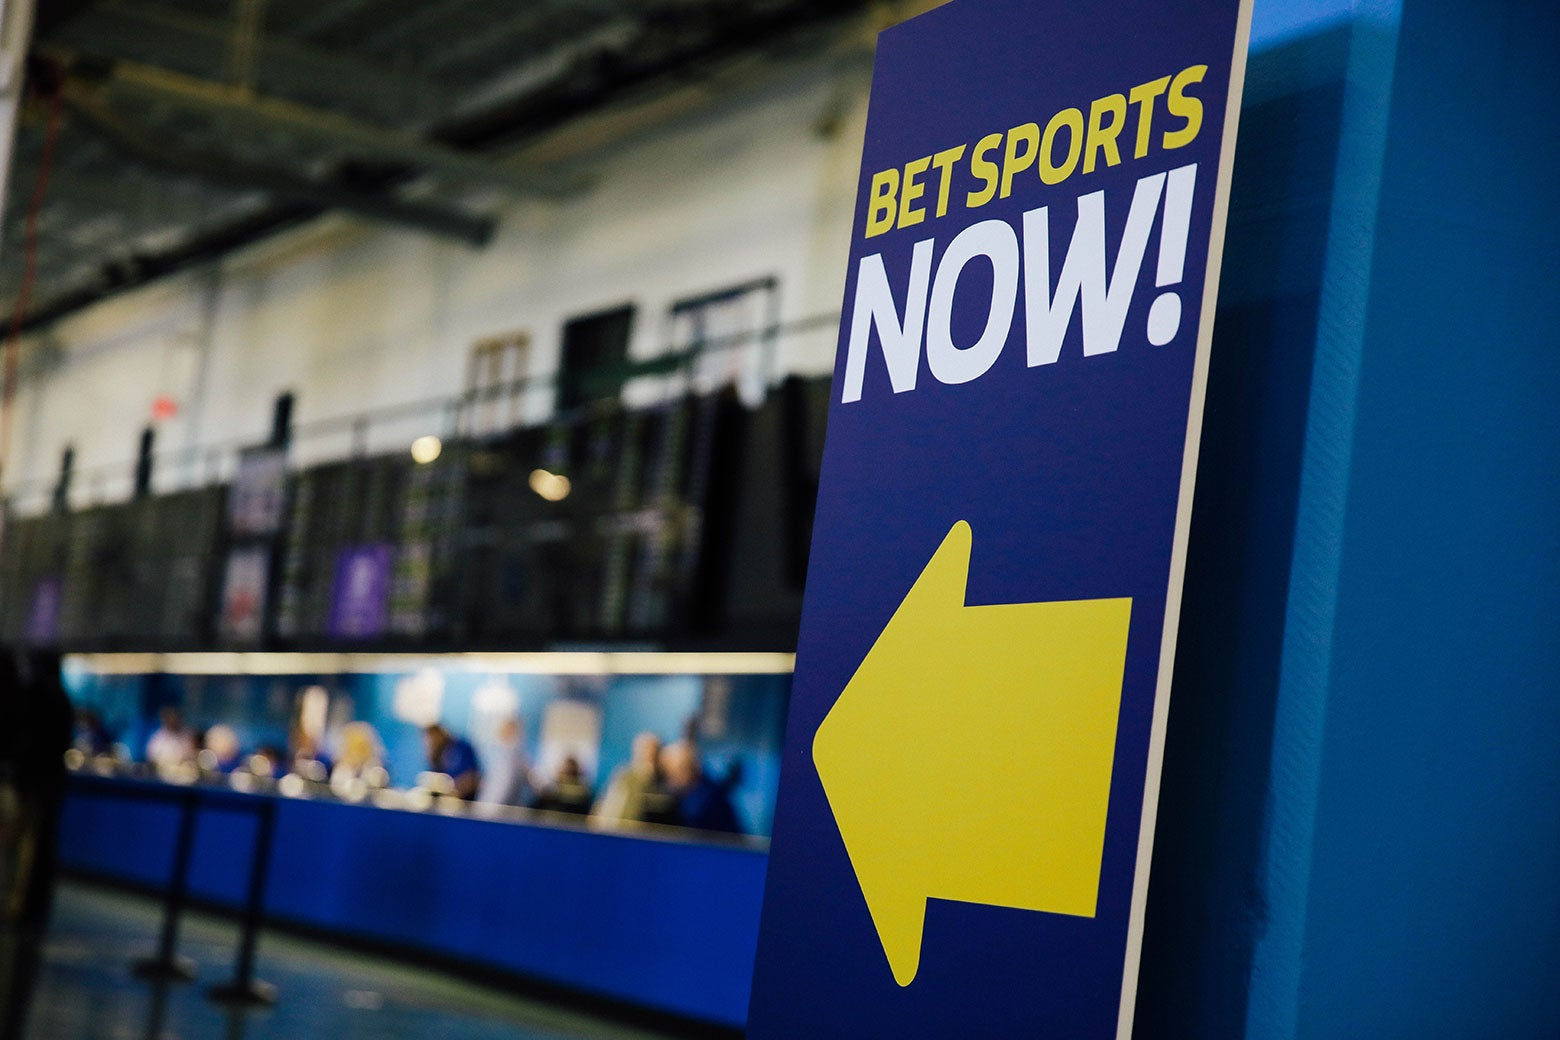 """Bet Sports Now!"" sign at The Monmouth Park Sports Book is viewed on the first day of legal sports betting in New Jersey on June 14."